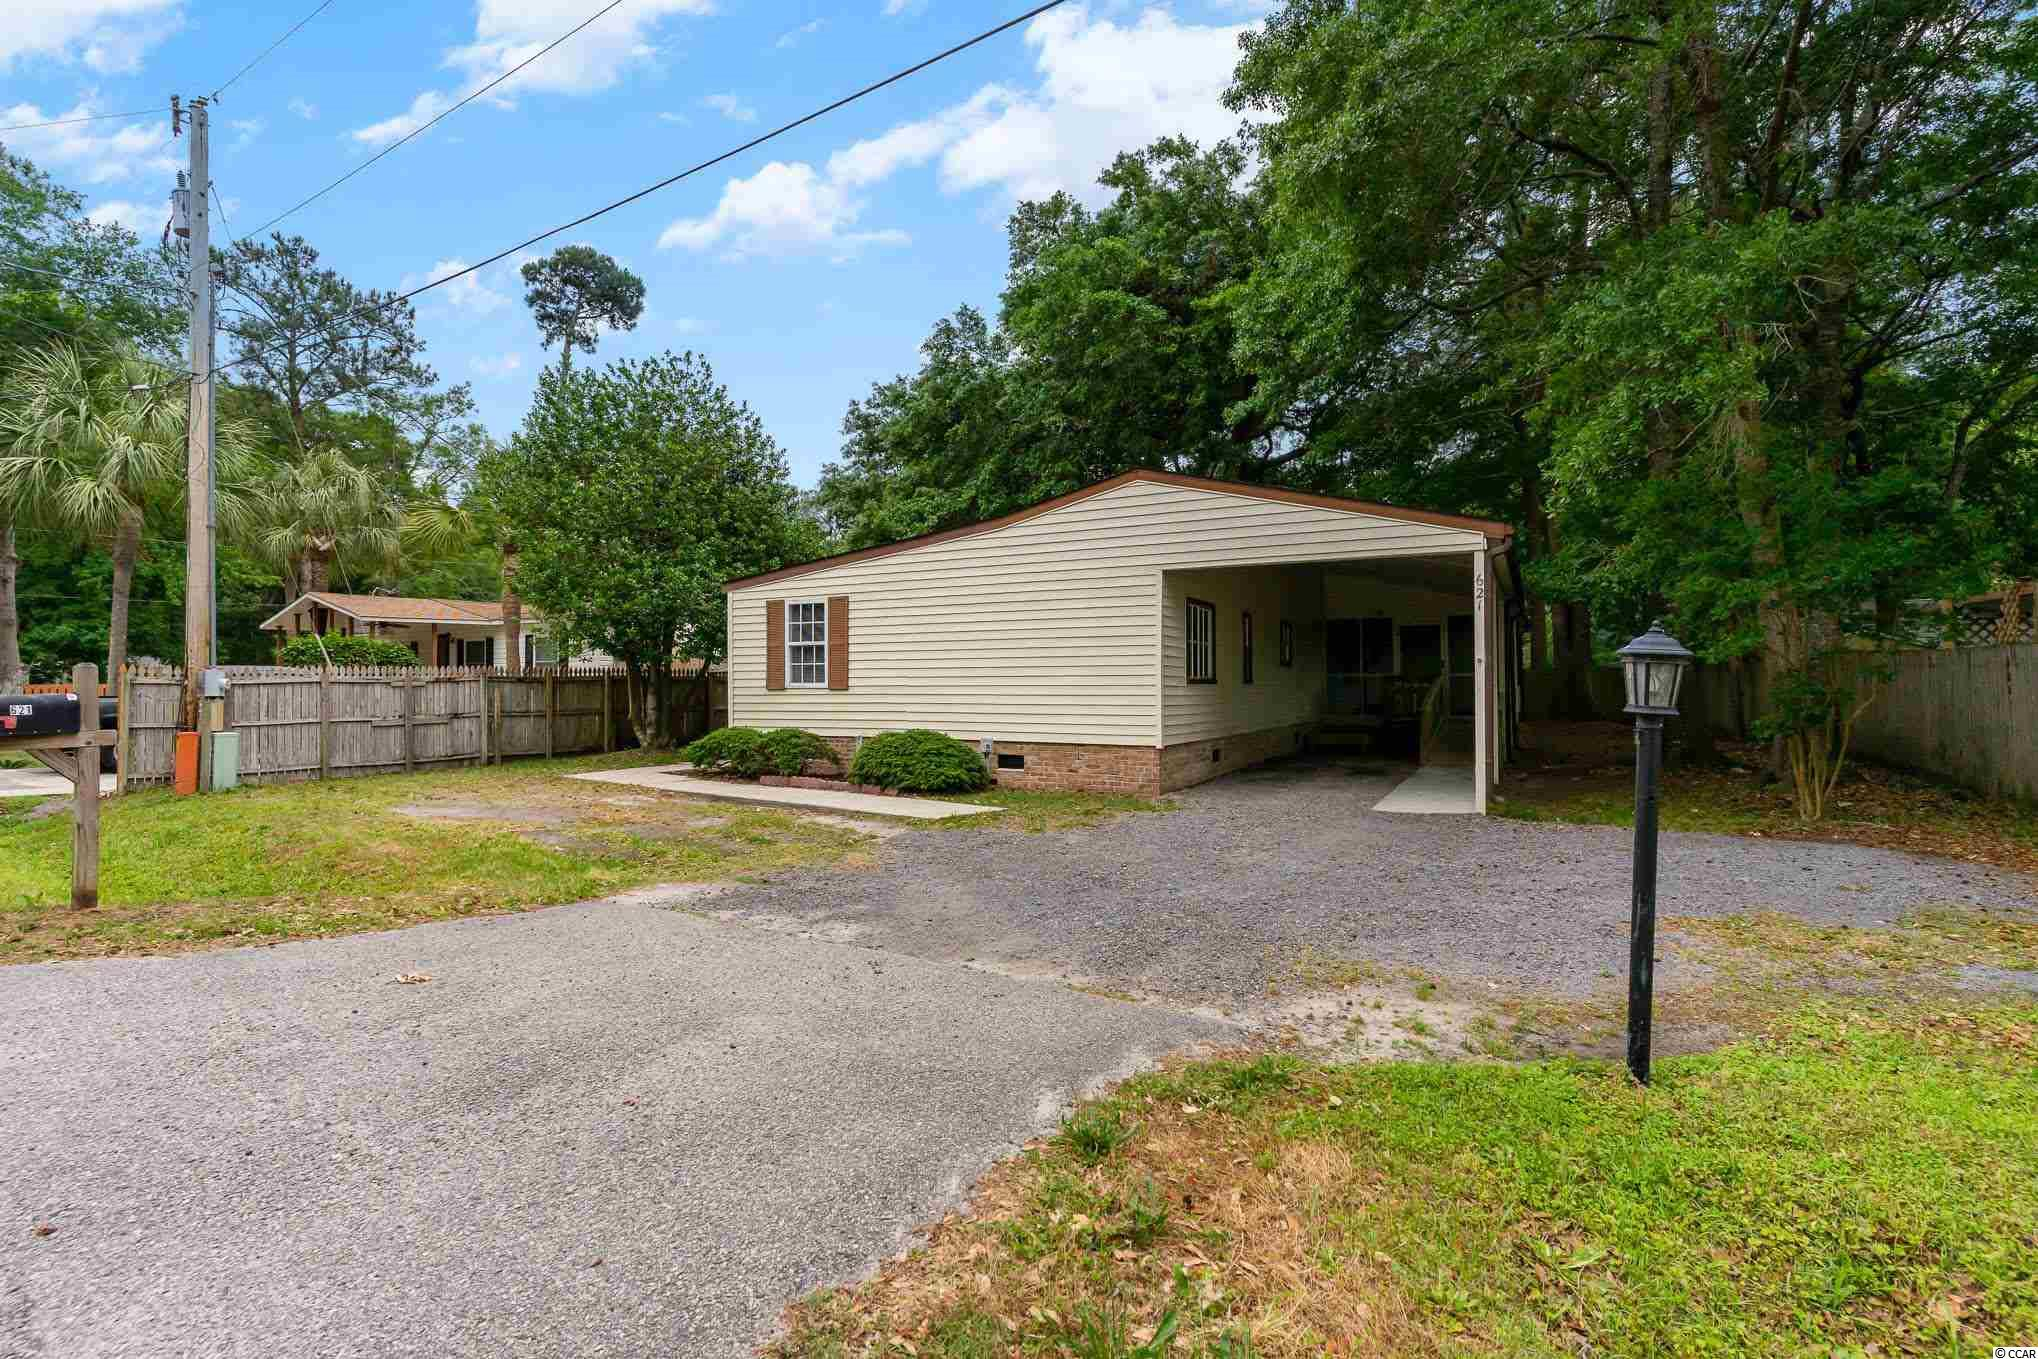 Best deal on the inlet! NO HOA! Walking distance to the famous Murrells Inlet Marshwalk and restaurants. This manufactured home has a private fenced-in yard, where you can enjoy watching birds while under the shade of a beautiful oak tree where you own the land! Take advantage of this opportunity with no HOA to bring your toys or create an income as an investment property that will offer your clientele the convenience of local restaurants, Brookgreen Gardens, Huntington Beach State Park, and Garden City Beach just minutes away. Enter the home with easy access from each side. This home boasts two covered porches, where you can enjoy your coffee in a peaceful setting. This home has 4 bedrooms with 2 full baths and a large open area that combines the kitchen and living area. Covered carport perfect for your cars, boat, or RV. Additional parking to the side.  Don't miss this opportunity to have all the benefits of Murrells Inlet with this property.   **Sold AS IS, Buyer to verify measurements